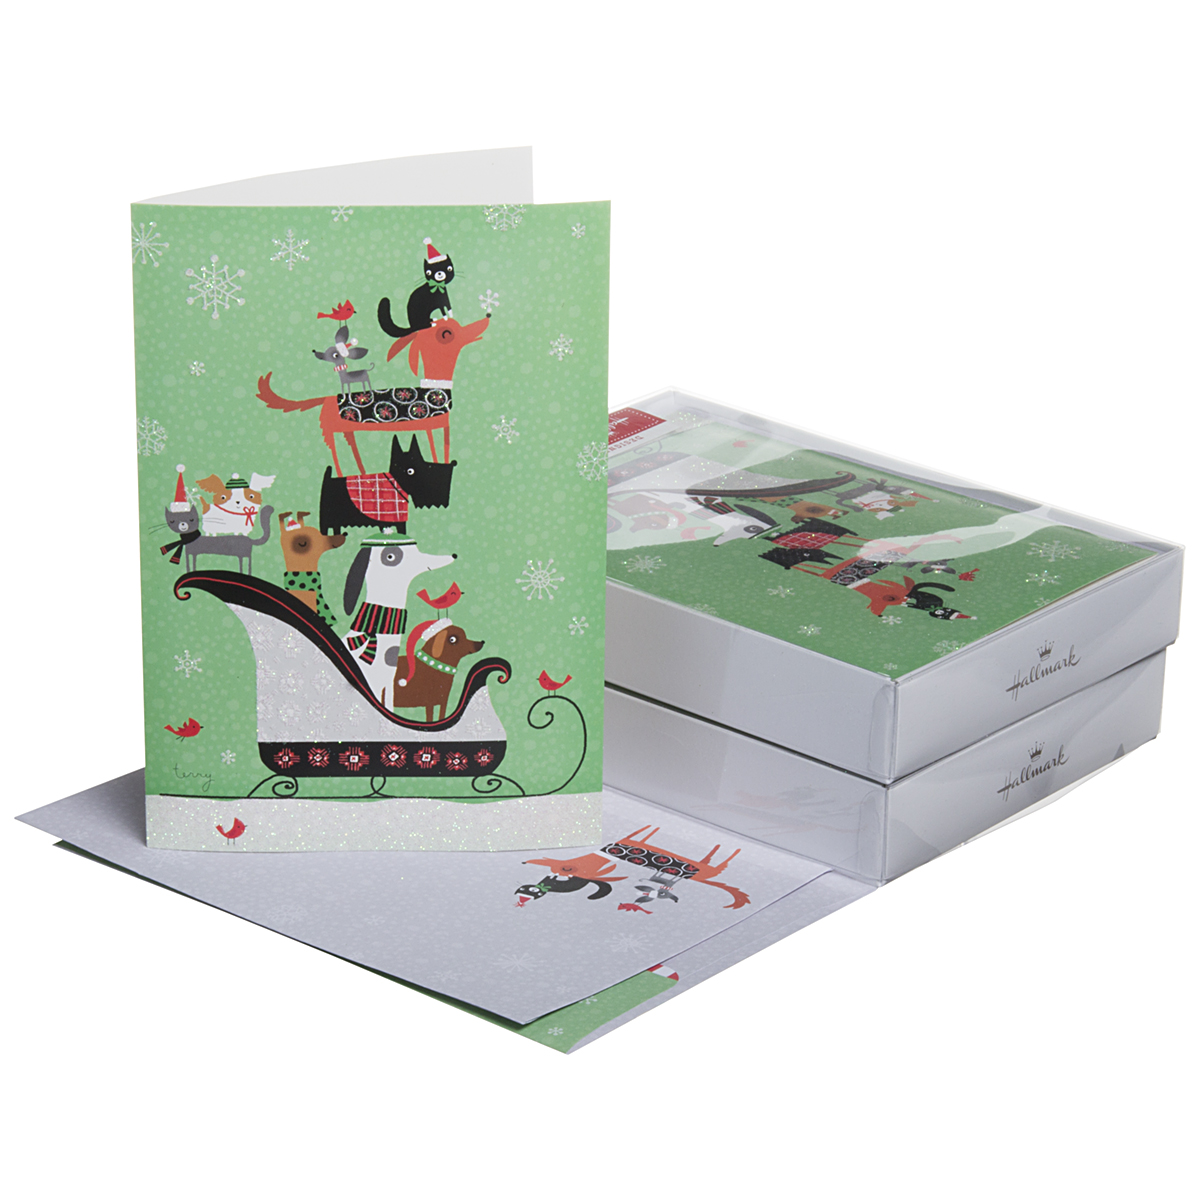 32 Pack Hallmark Christmas Greeting Cards With Envelopes Holiday Box Set Foil Glitter Cute